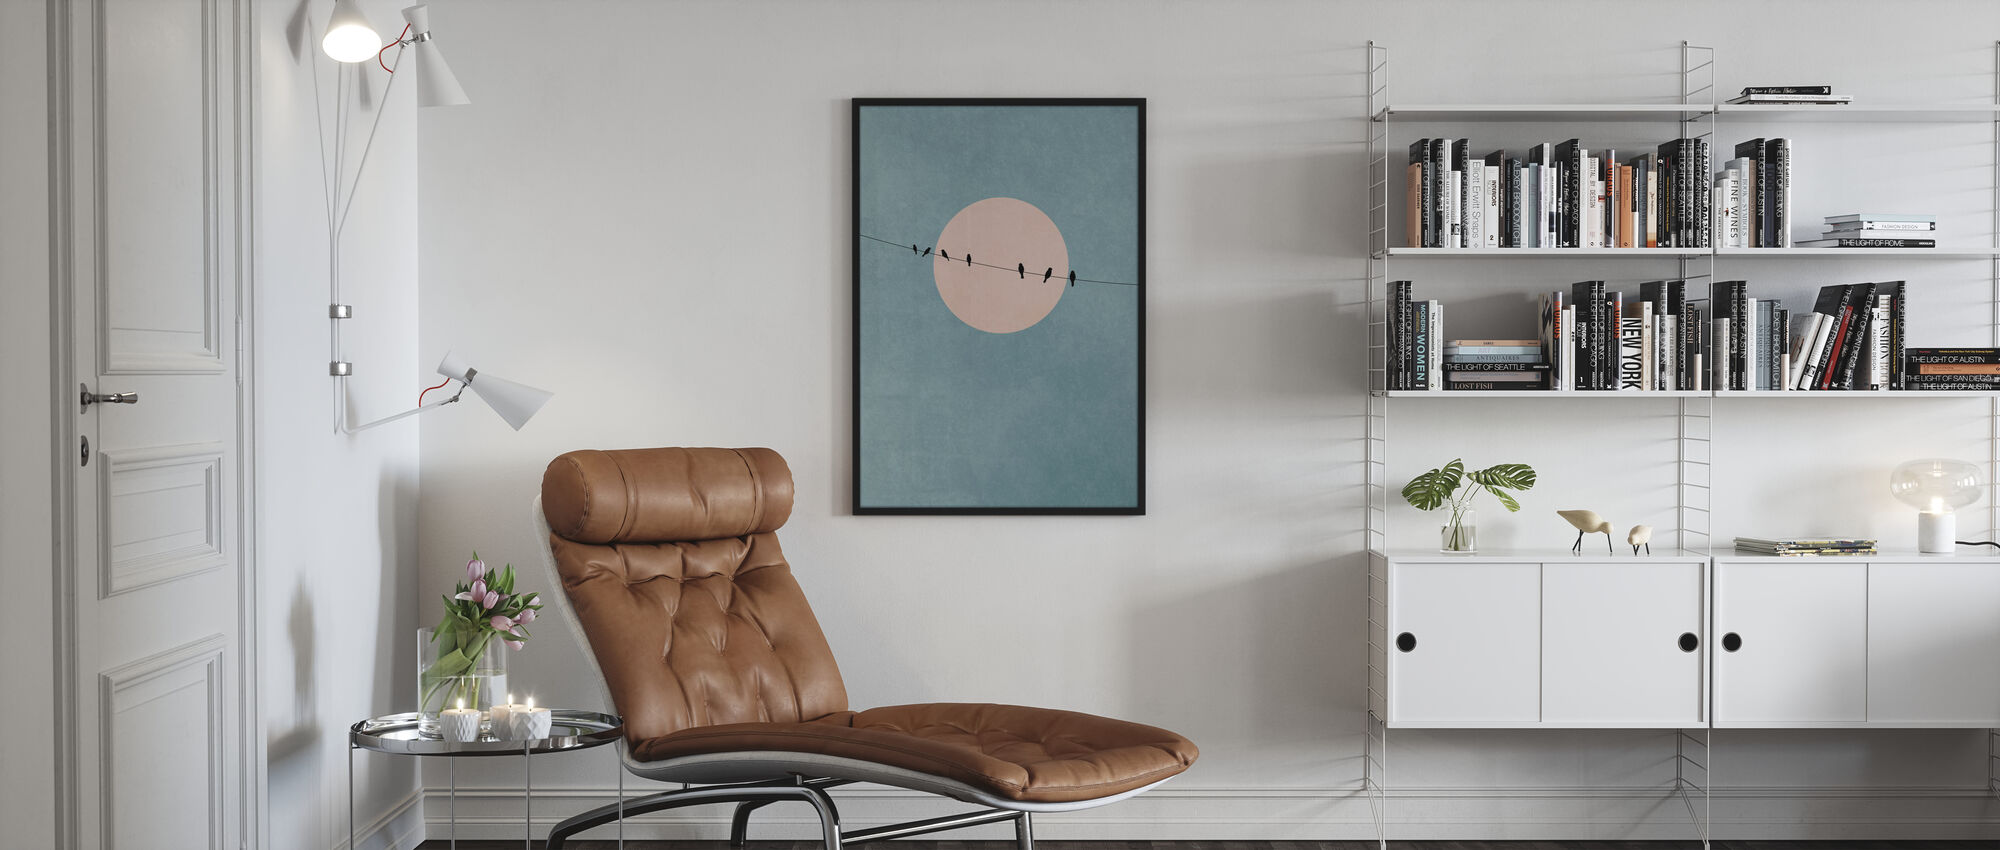 Beauty of Silence - Poster - Living Room